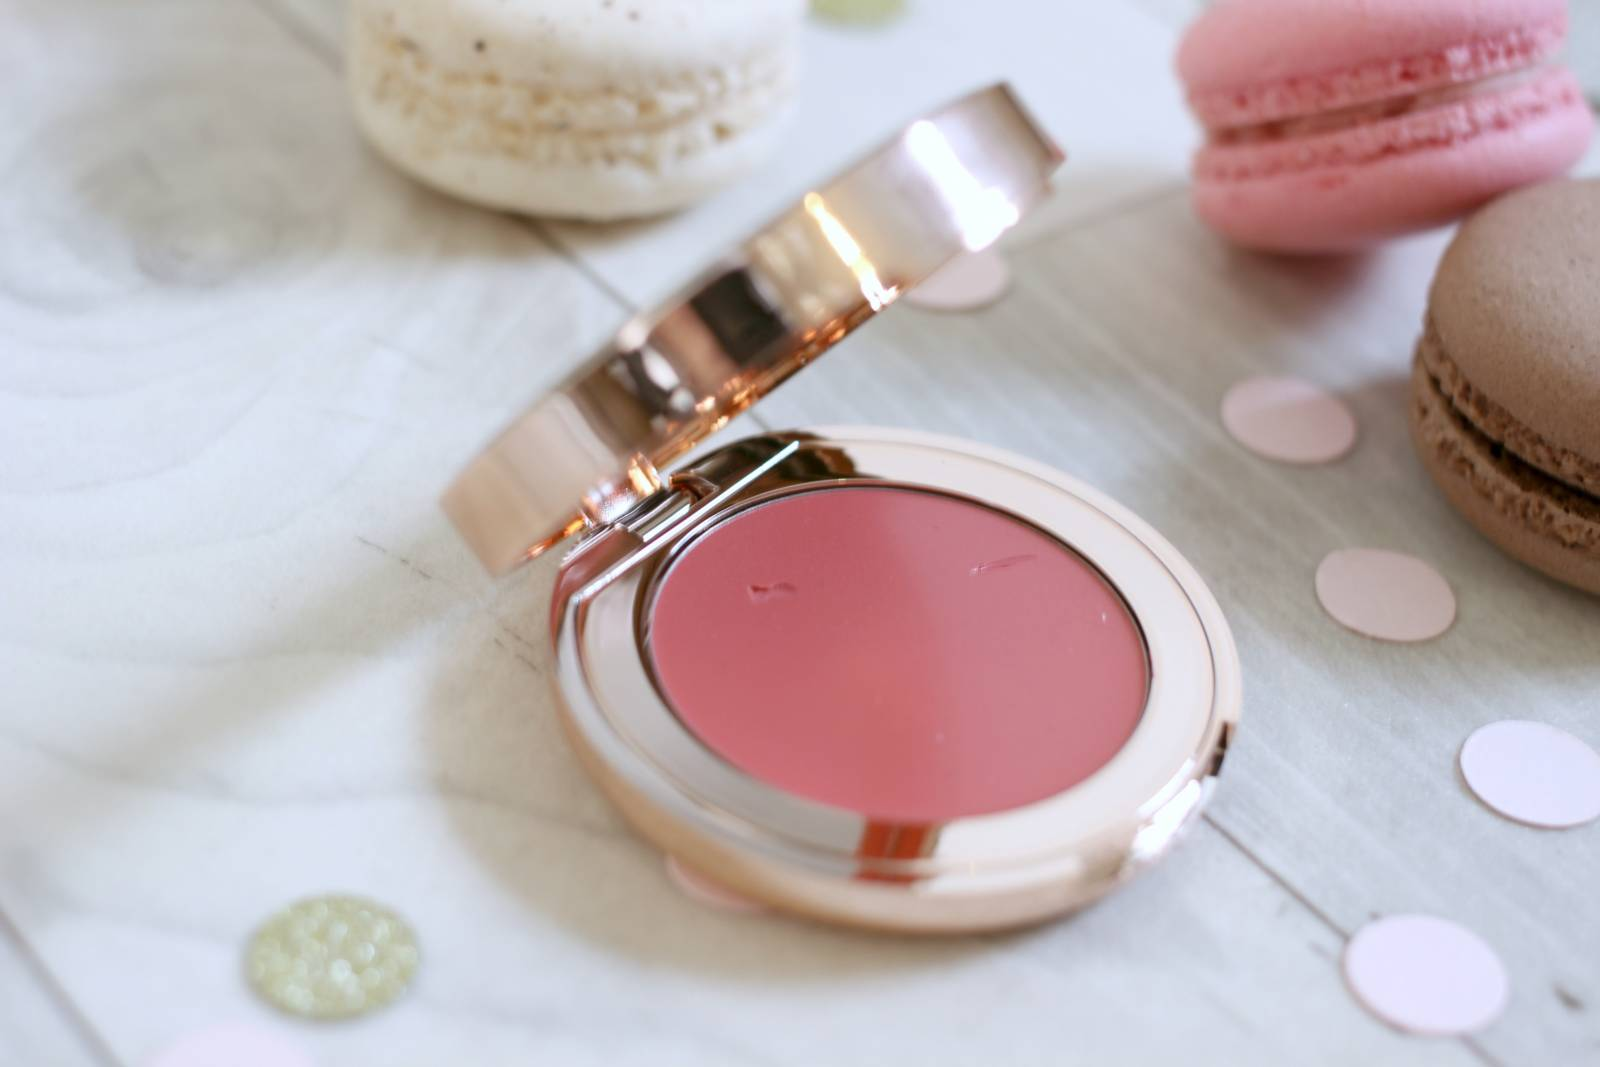 3 Beauty Trends for 2016 - Glowing Skin, Blush, Korean Skincare blush